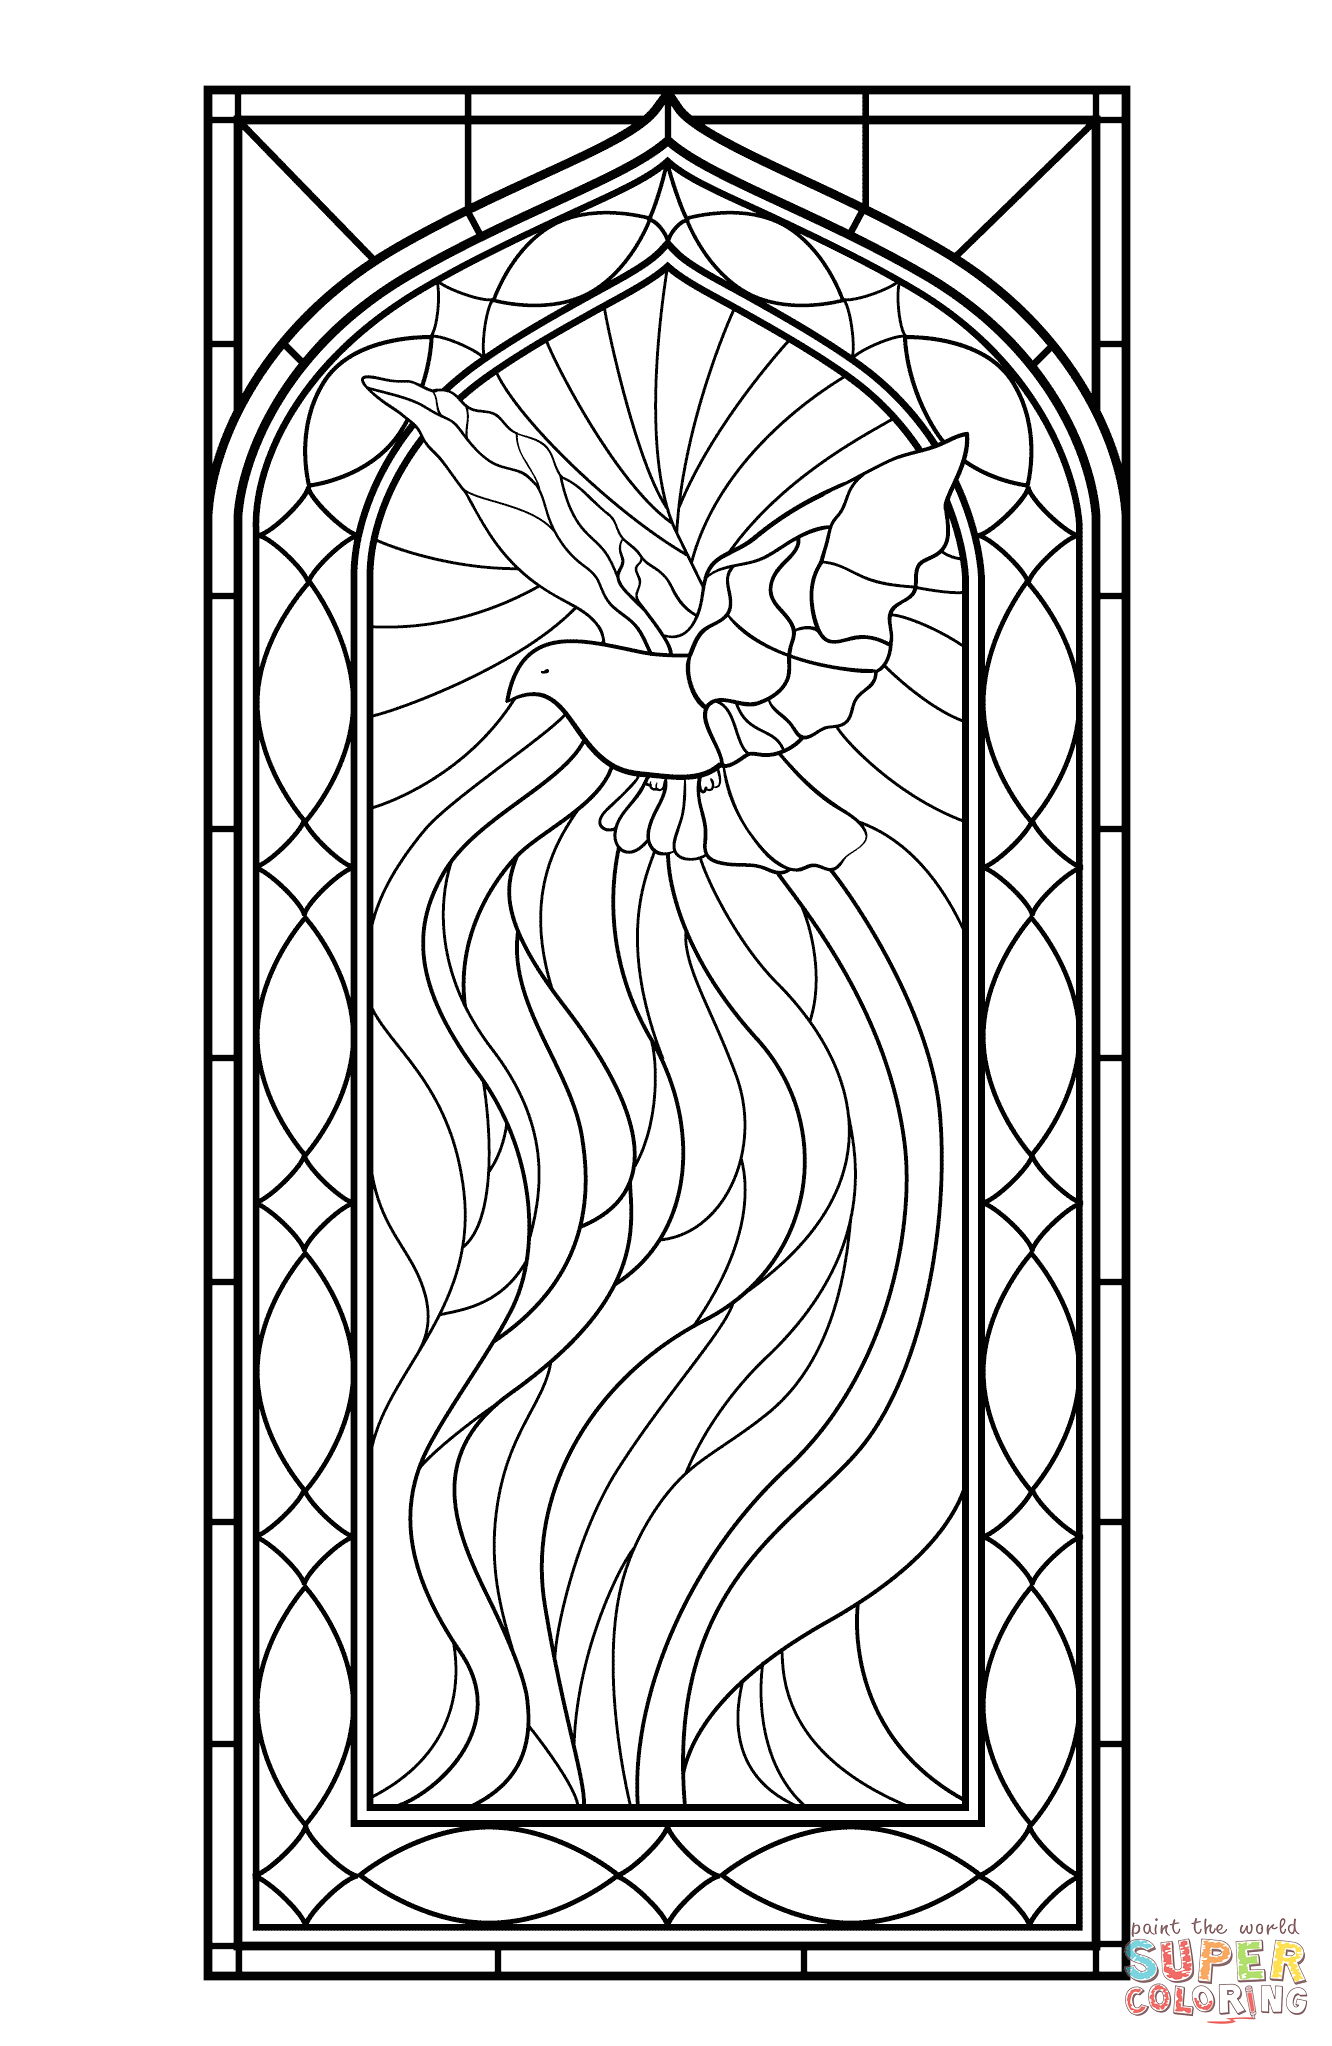 Free Printable Stained Glass Window Coloring Pages Stained Glass Window with Holy Spirit Coloring Page